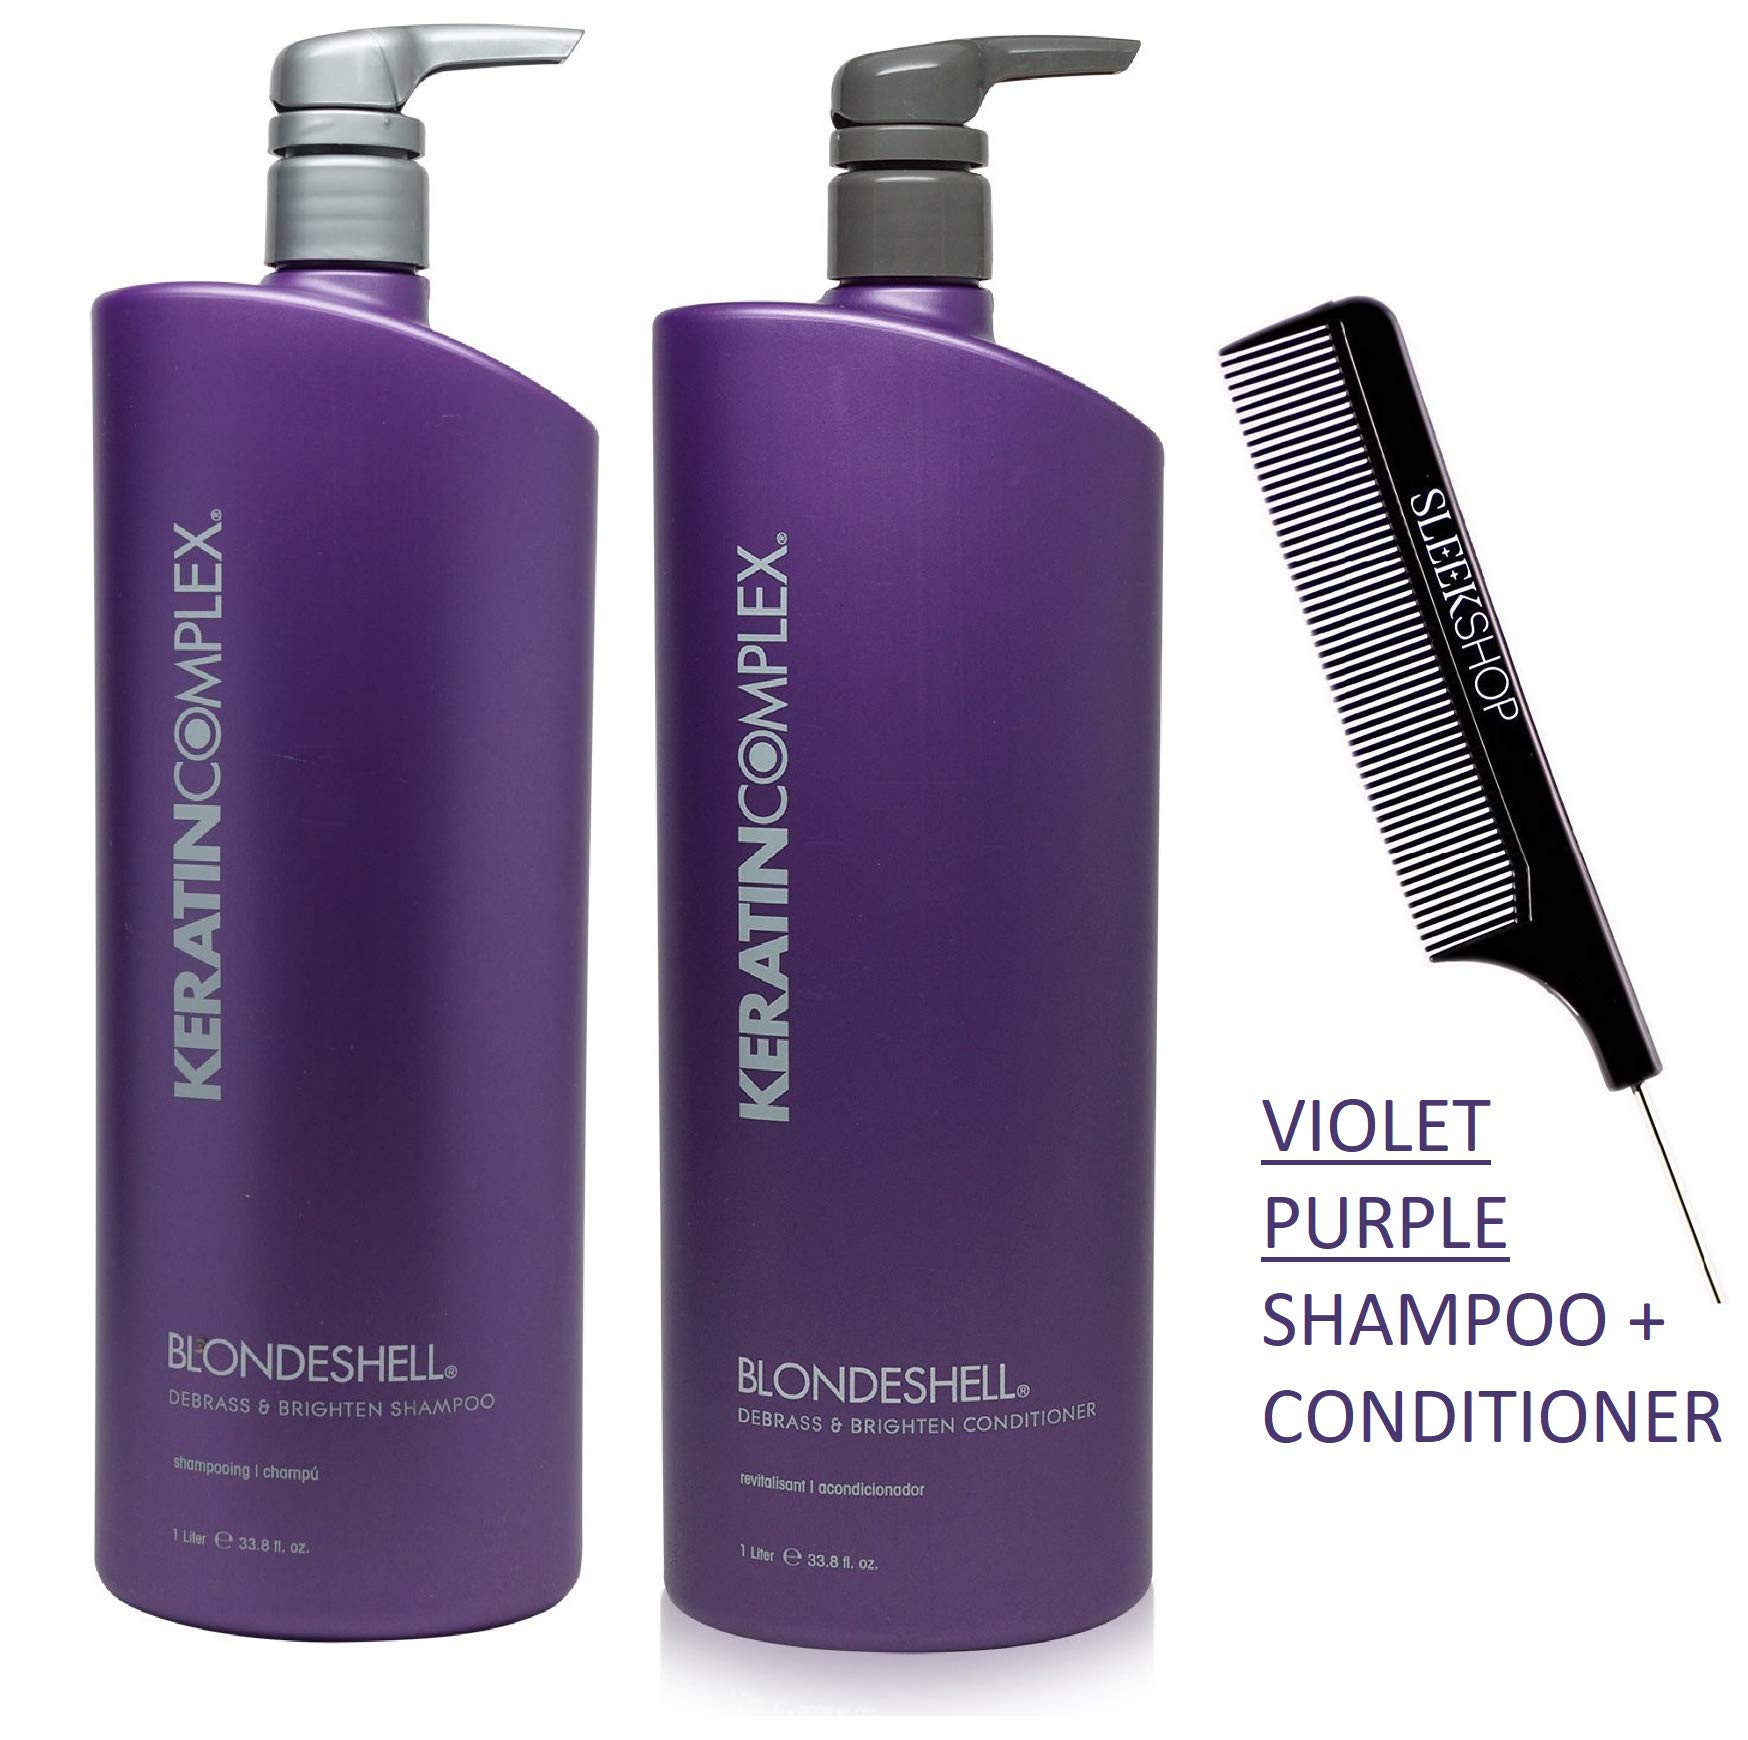 Keratin Complex BLONDESHELL DEBRASS & BRIGHTEN Shampoo & Conditioner DUO SET (Stylist Kit) Violet Purple Shampoo for Yellow, Blonde, Silver, Brassy Hair (LARGE DUO - 33.8 oz / 1000 ml) by Keratin Complex